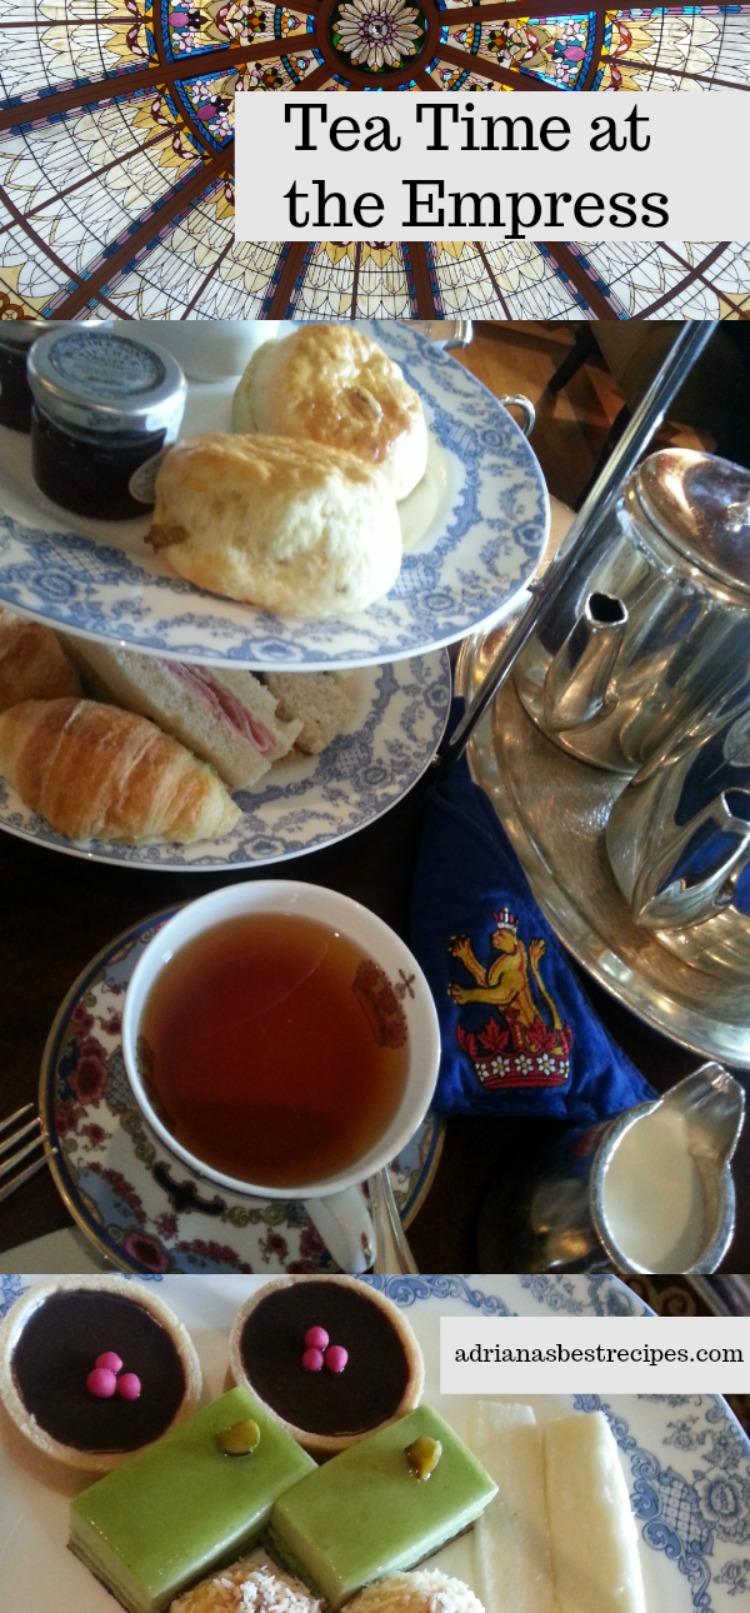 Tea Time at the Fairmont Empress